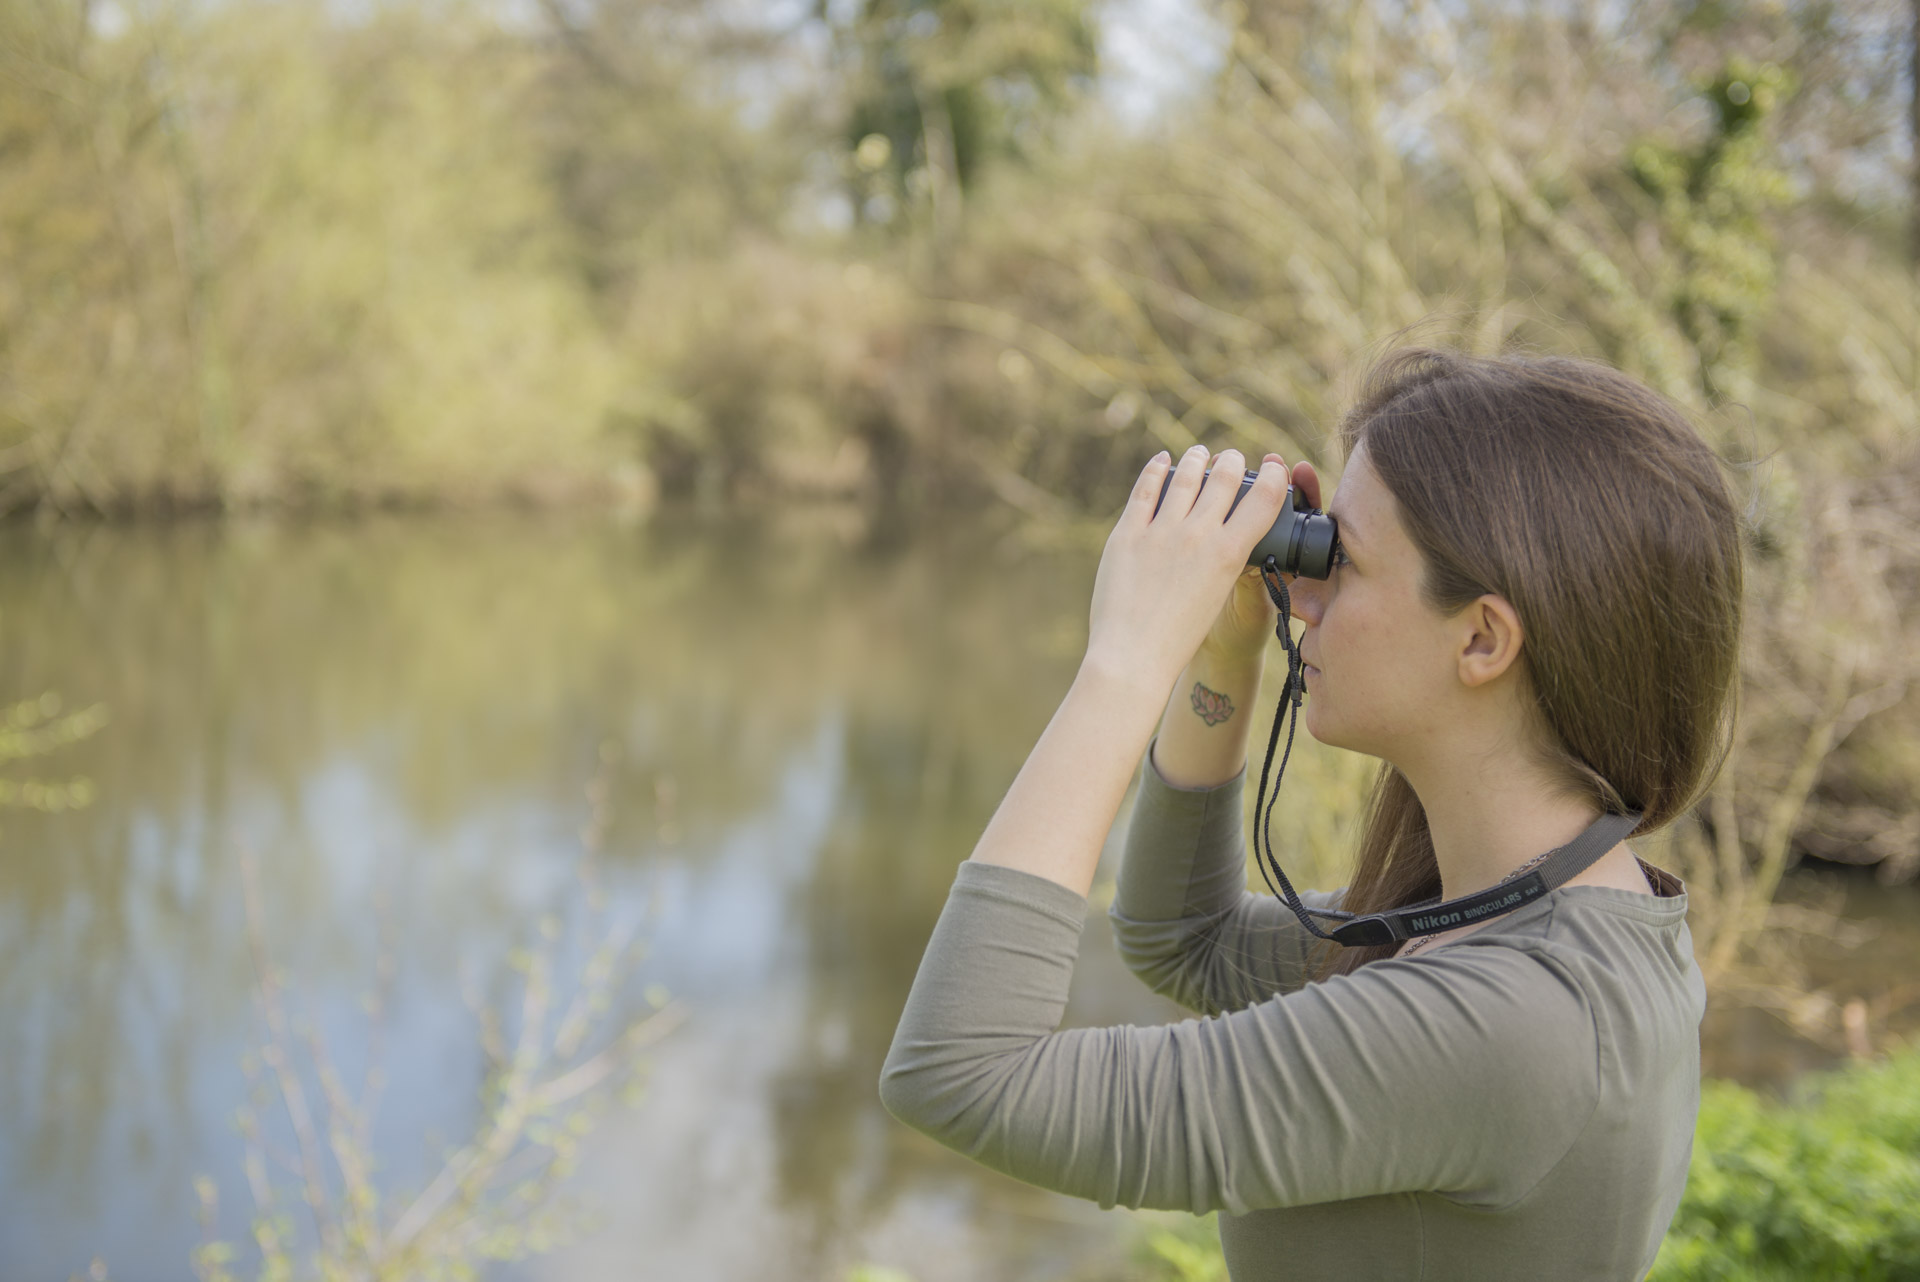 Emma Checkley, Ecologist at Wharton Natural Infrastructure Project, identifying birdlife at the nature reserve pond.